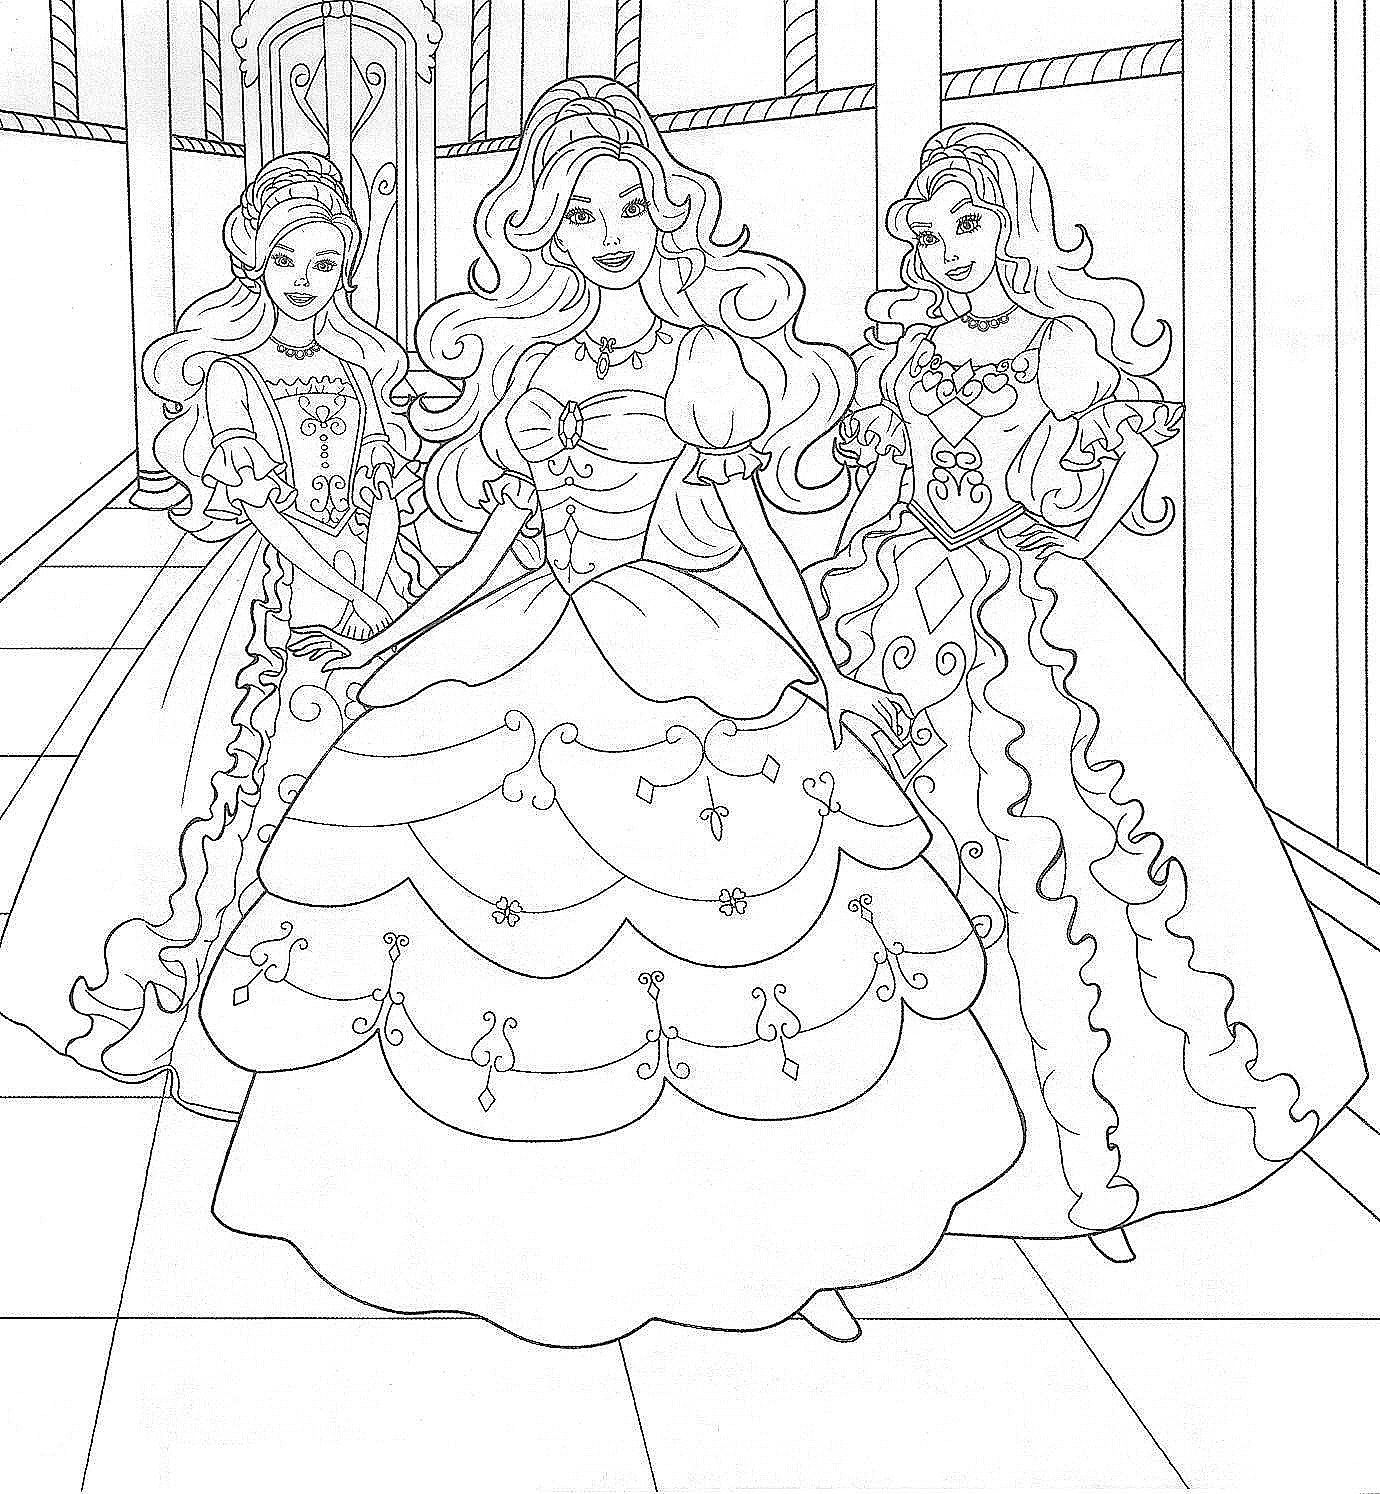 barbie coloring pages that you can print  BARBIE COLORING PAGES